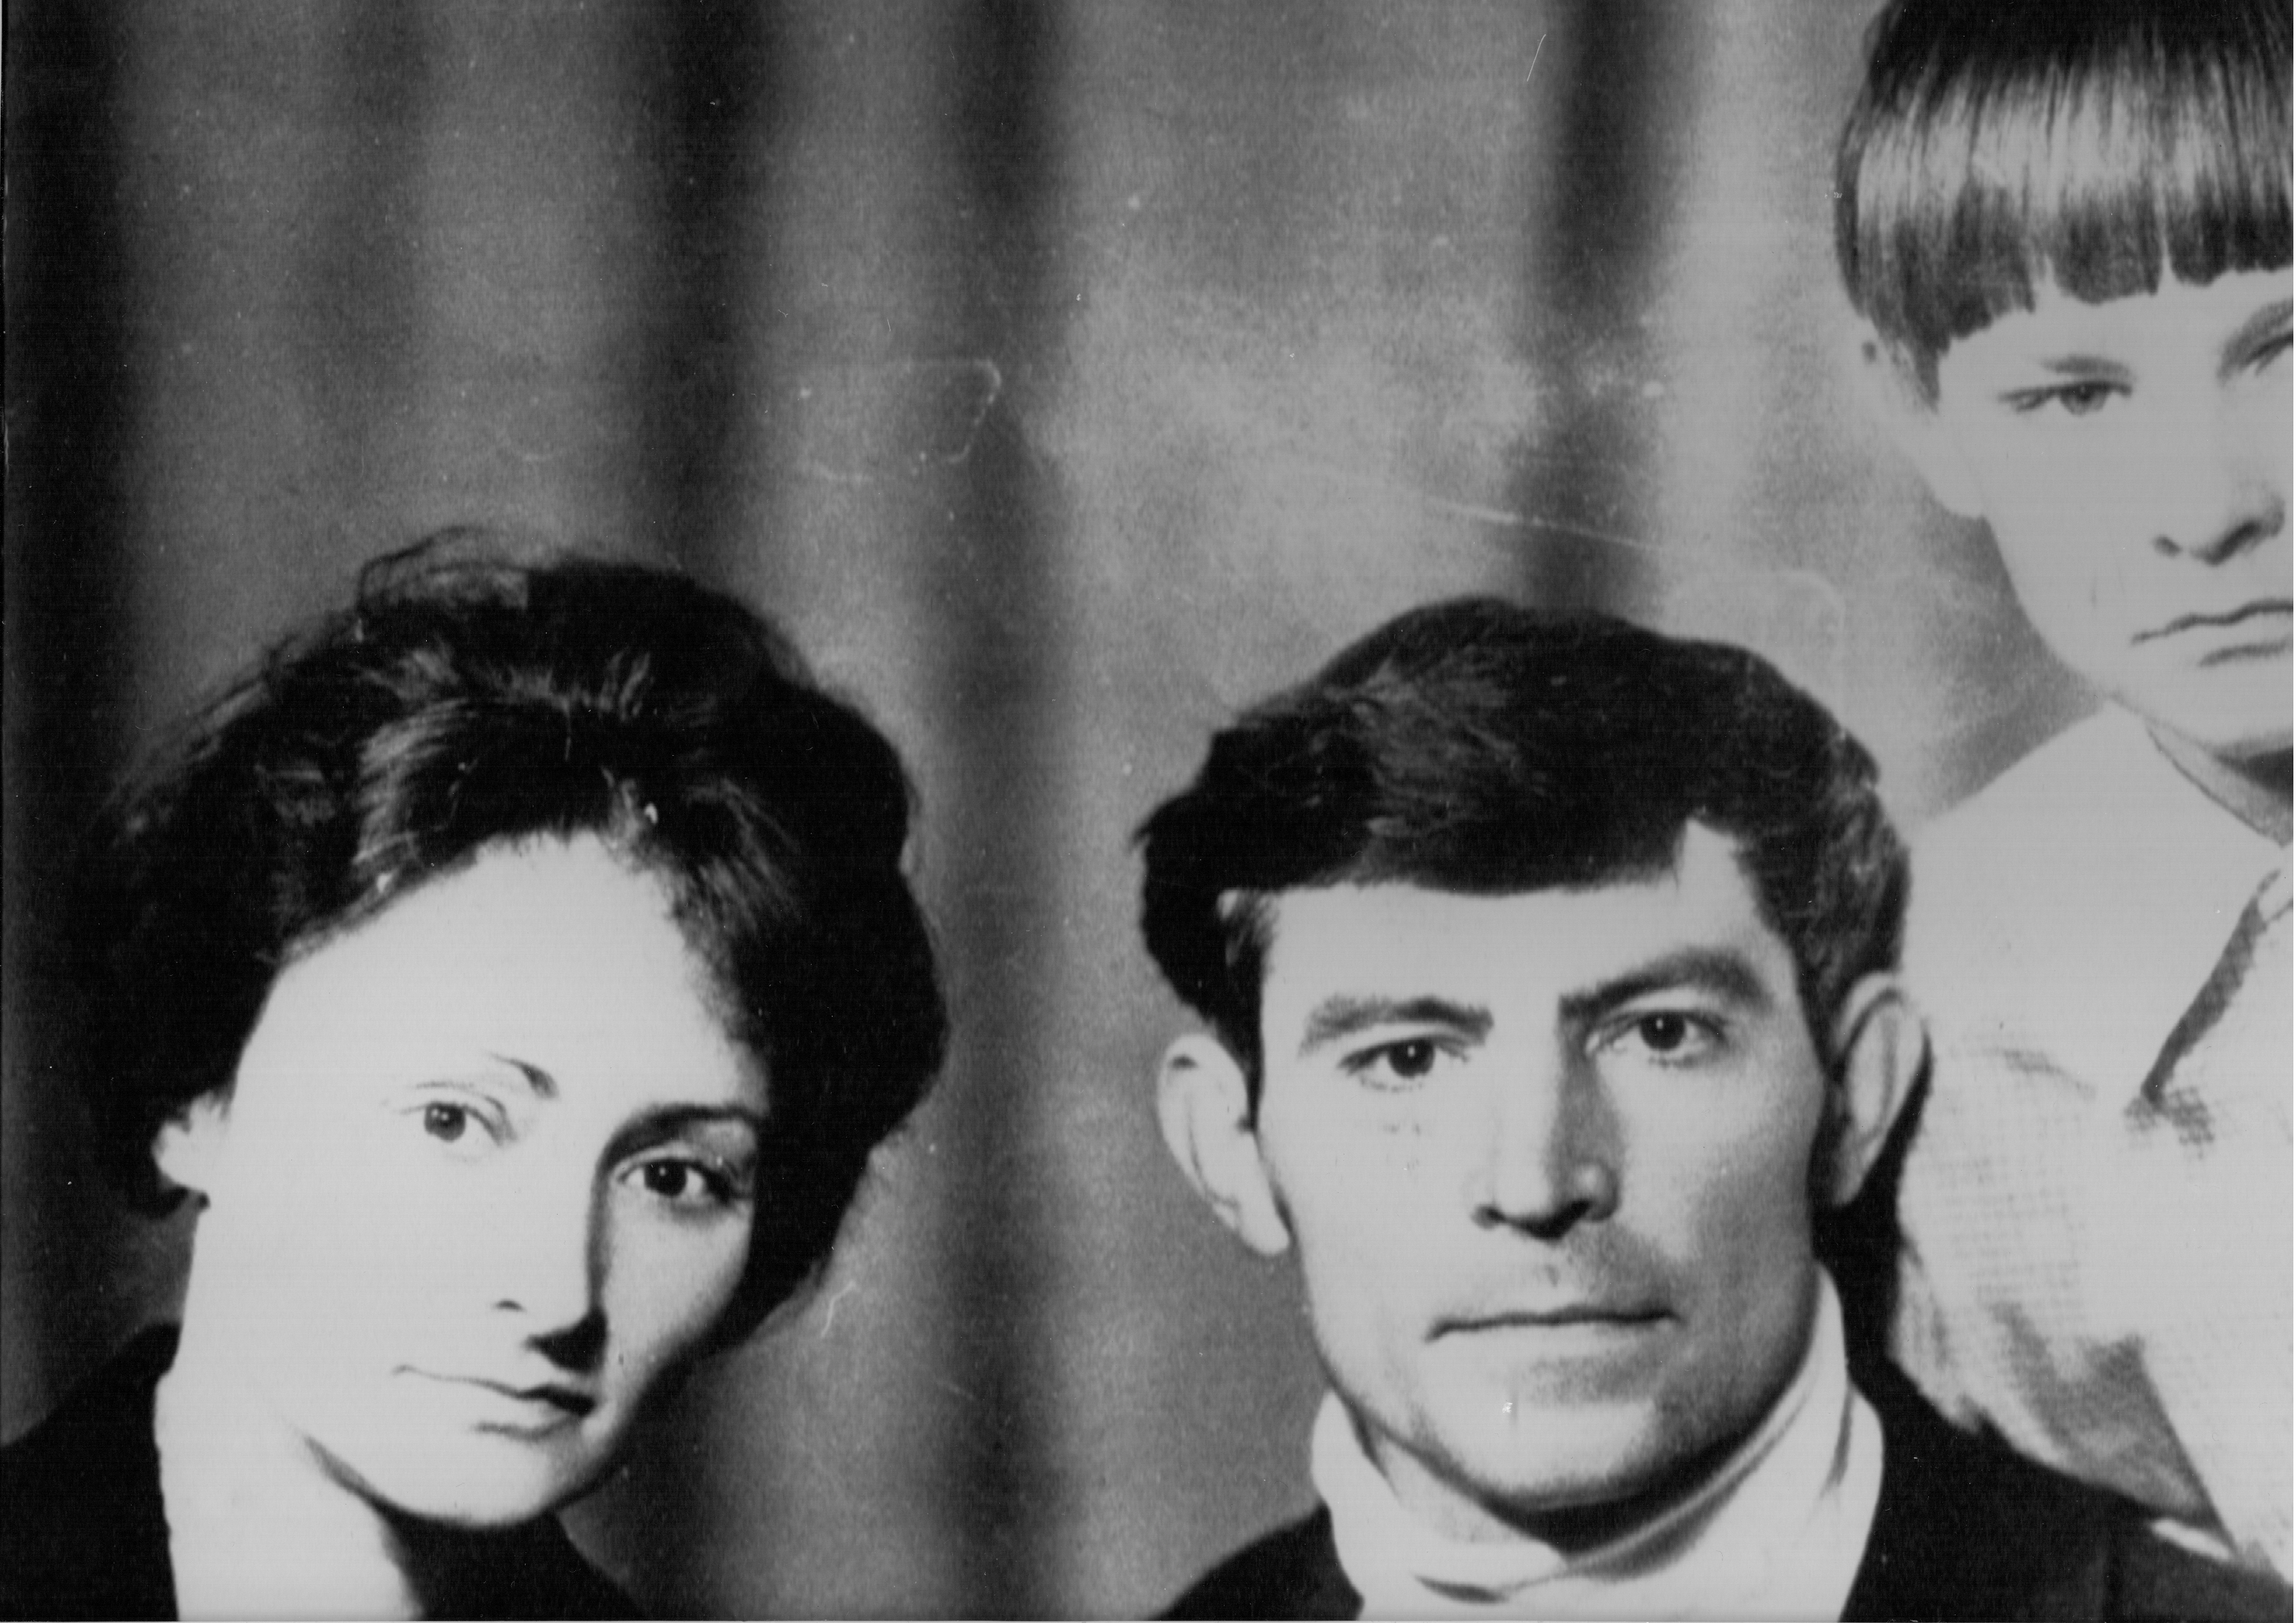 Vasyl Stus with his wife, Valentyna Popeliukh, and their son Dmytro, 1976